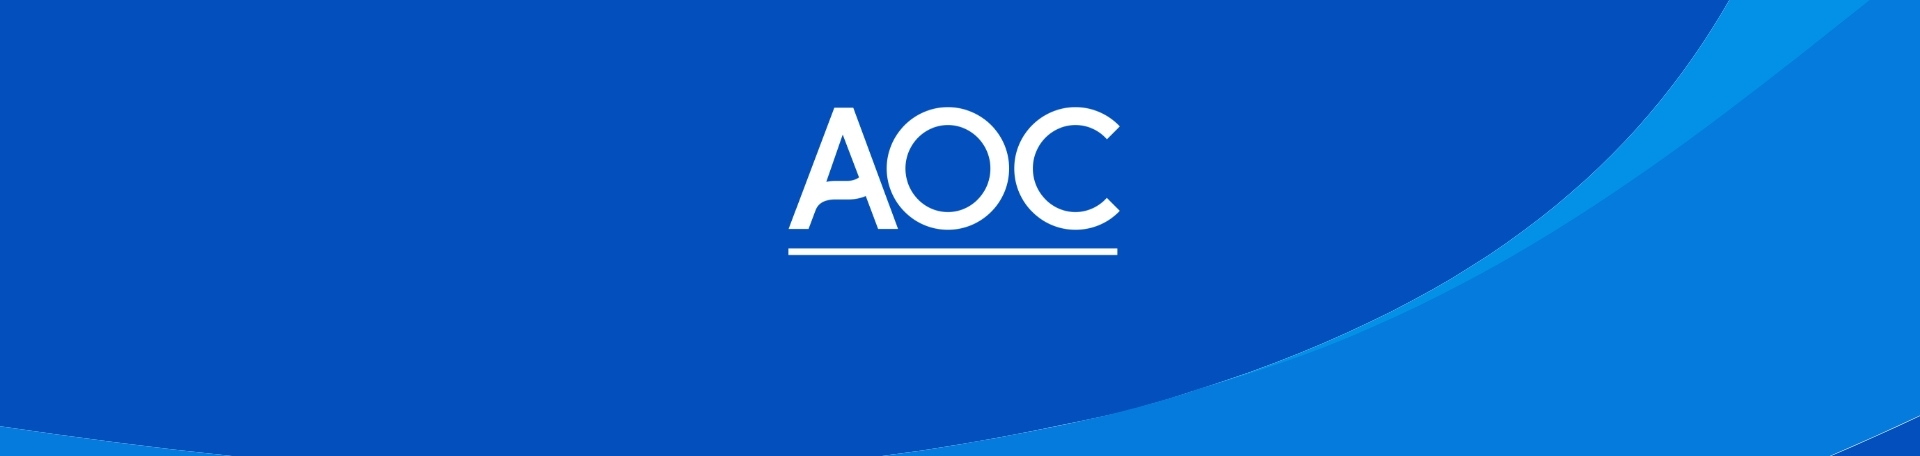 AOC Aliancys Sells AOC (UK) Ltd. to BÜFA Composite Systems